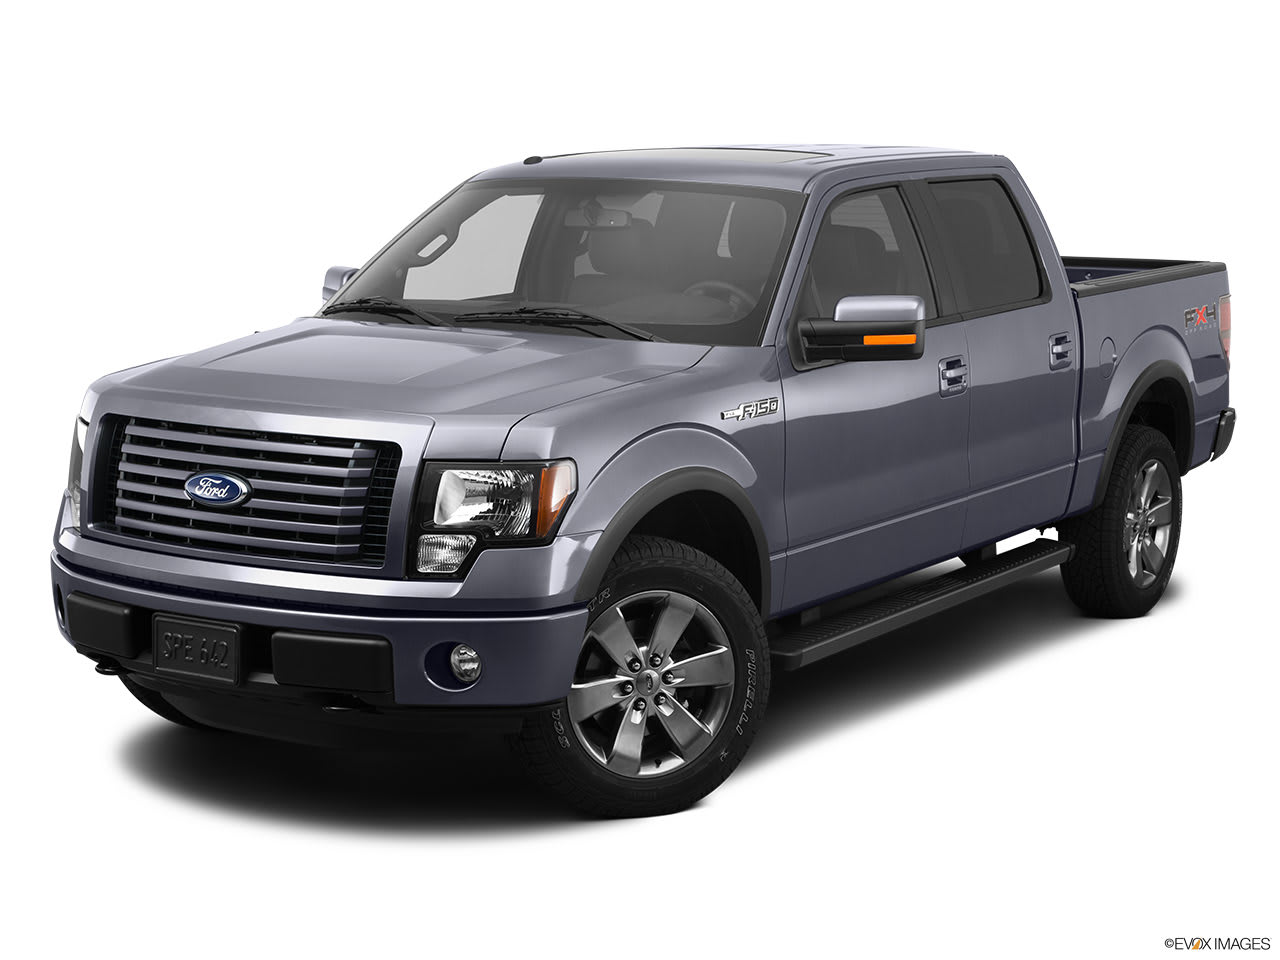 2011 Dodge Ram vs  2011 Ford F-150: Which One Should I Buy